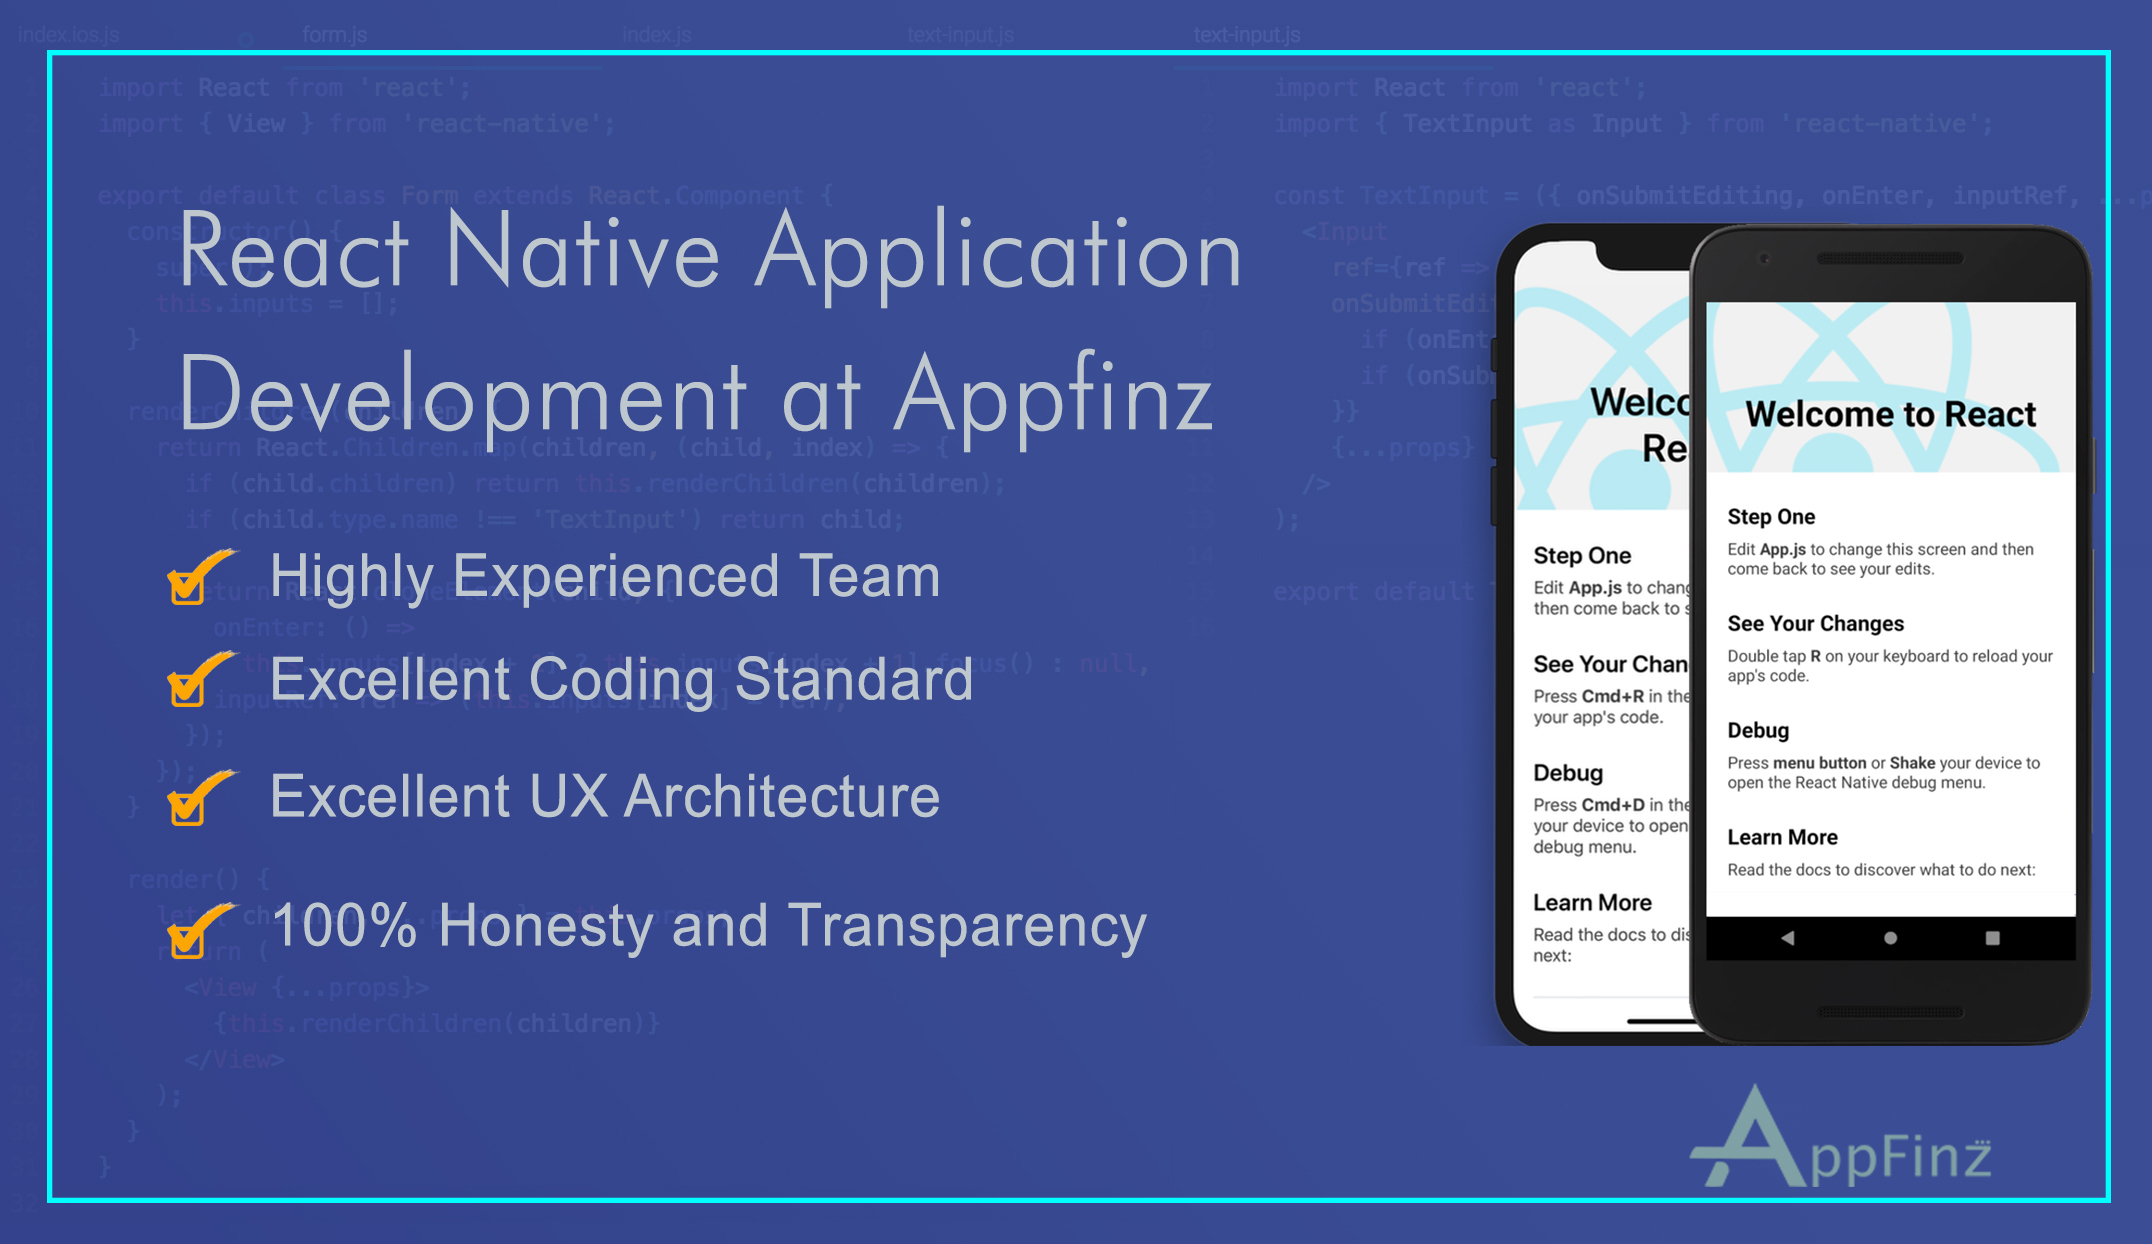 react native mobile apps development, react native apps development company in delhi